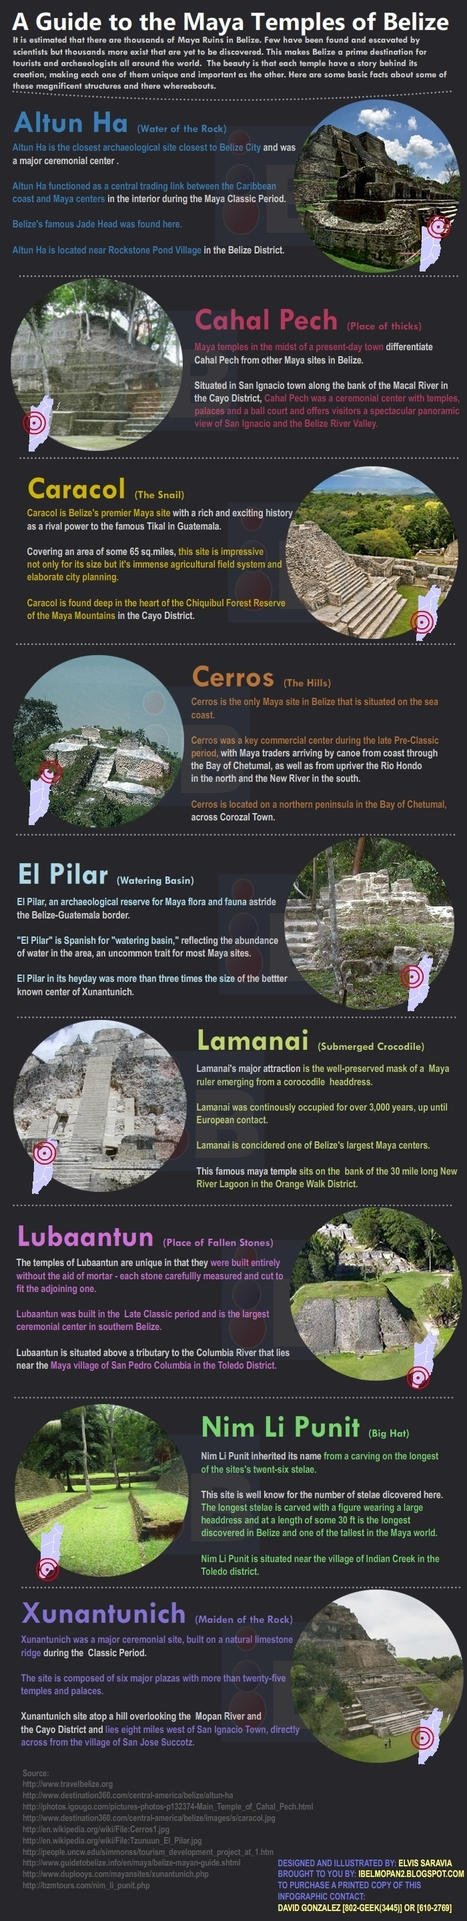 Mayan Temples of Belize | mayan archaeology | Scoop.it